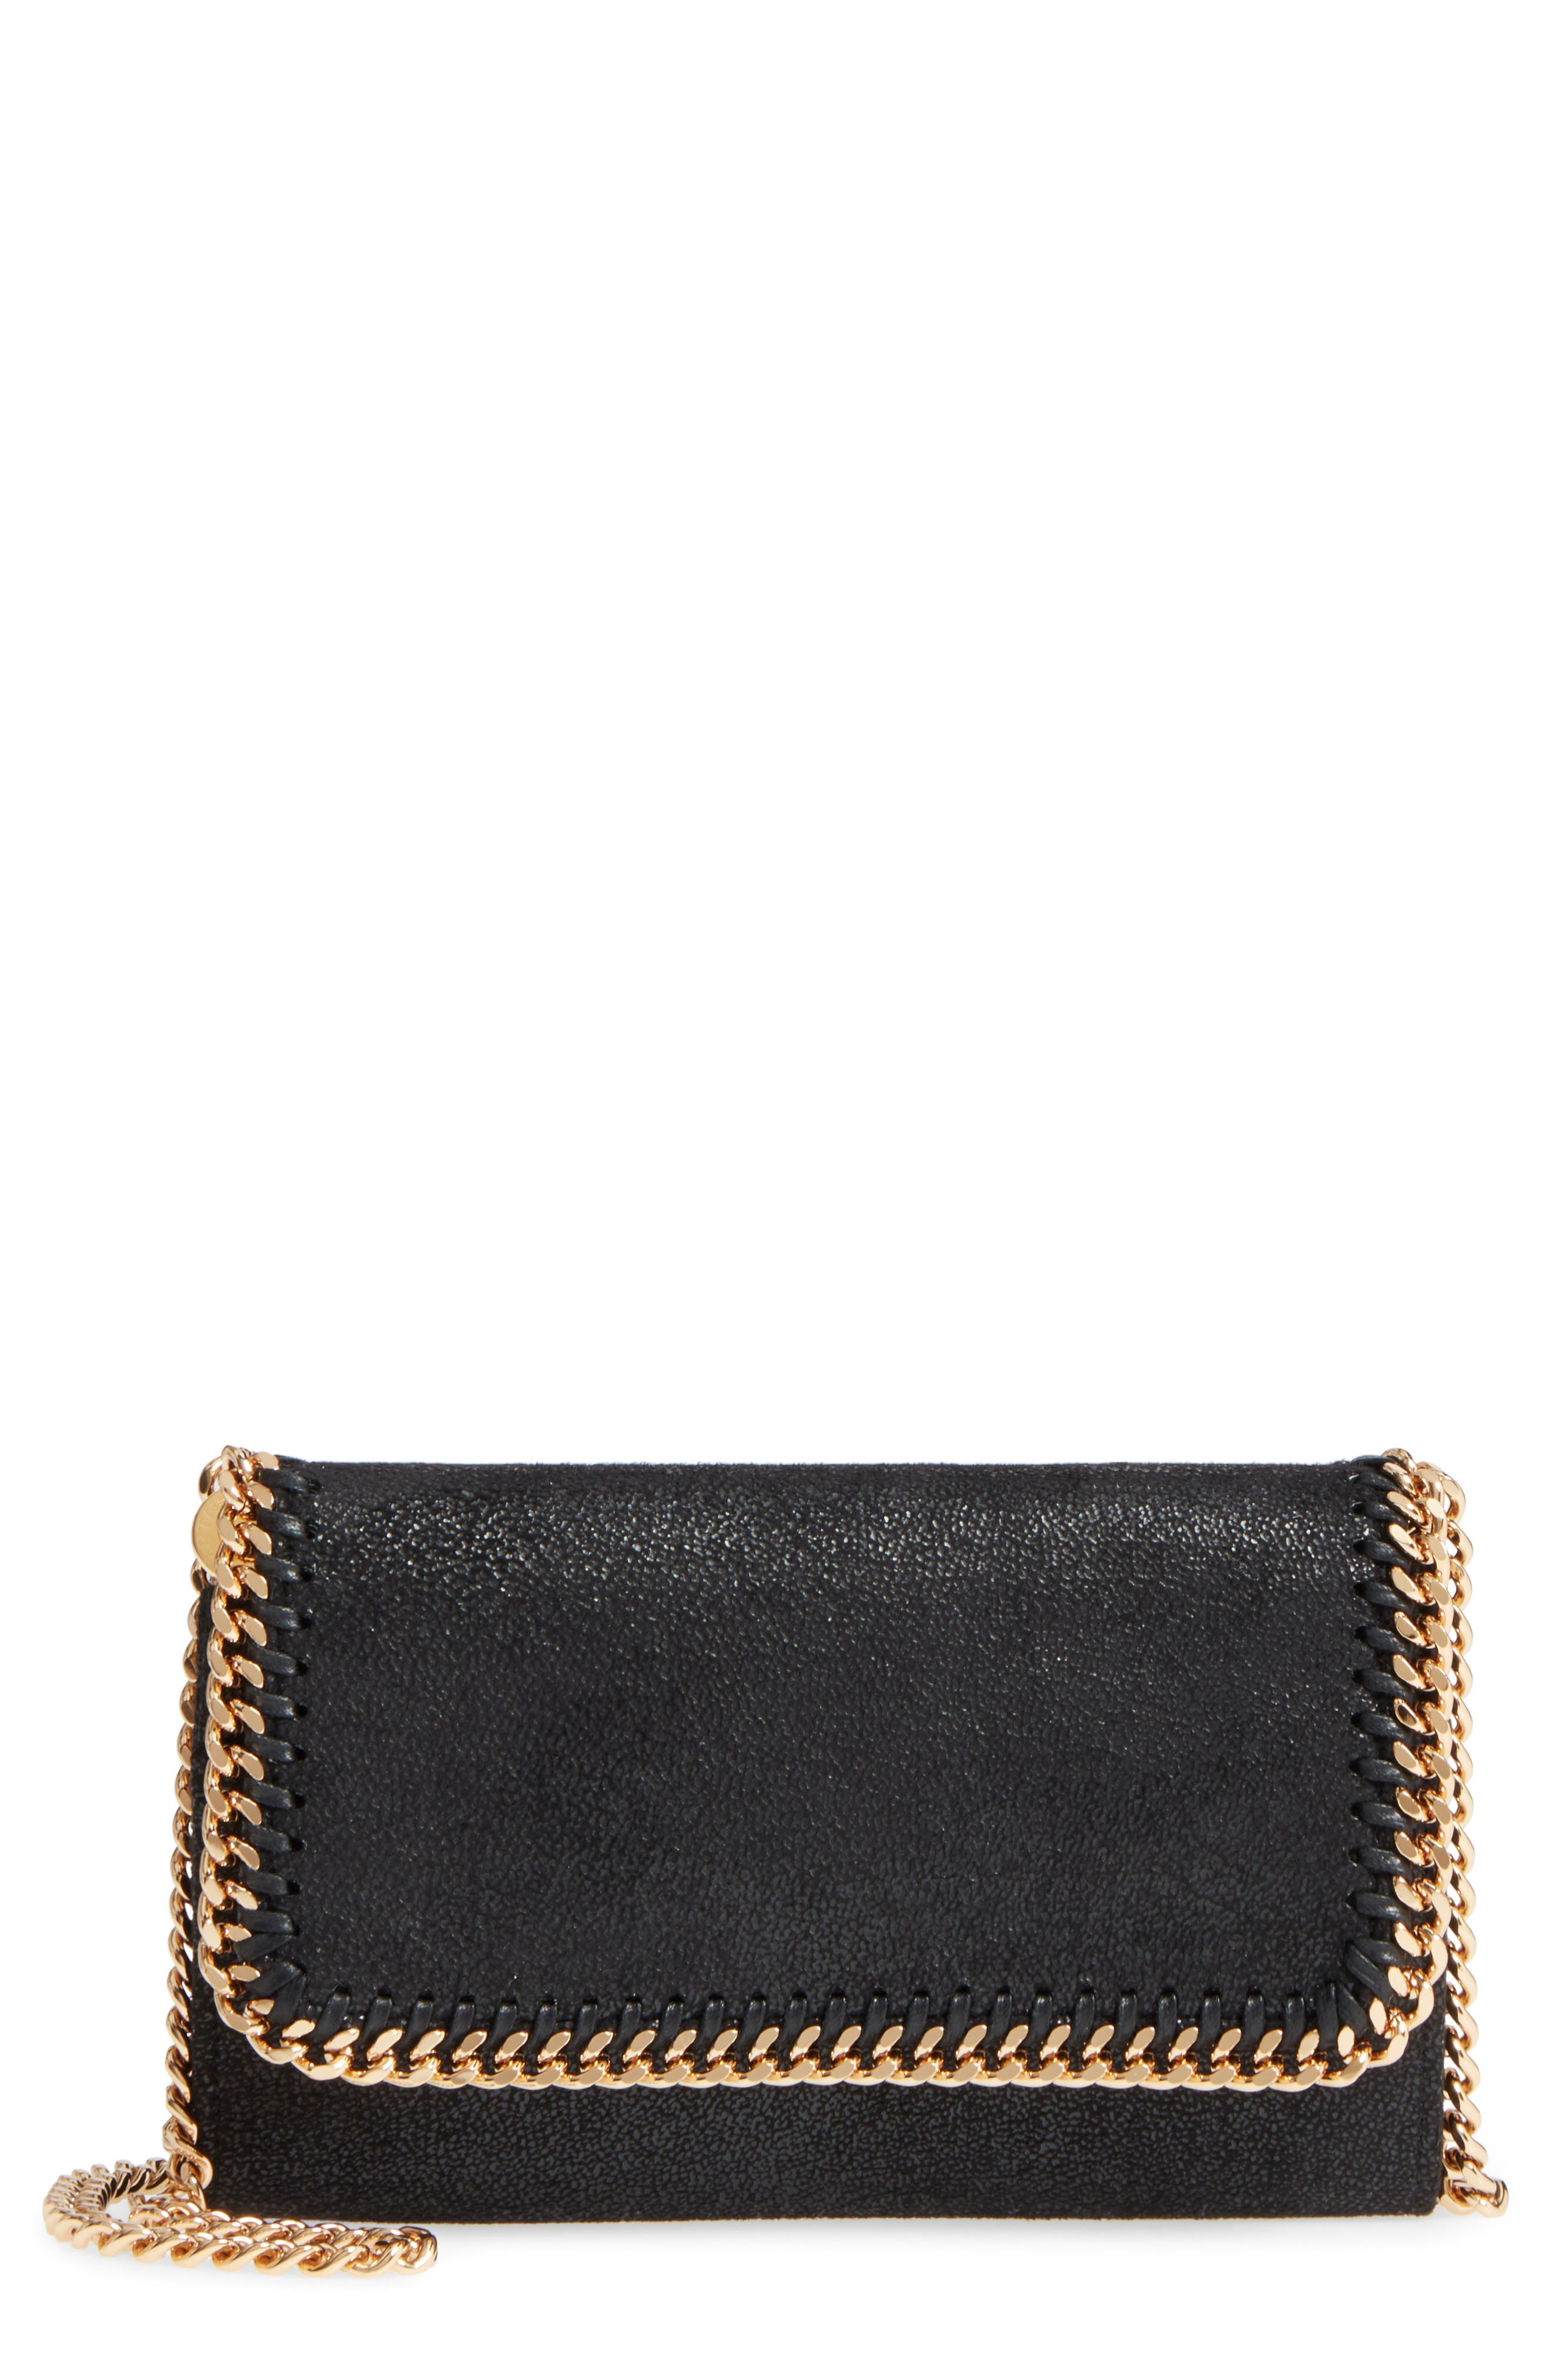 Shaggy Deer Faux Leather Crossbody Bag,                         Main,                         color, Black